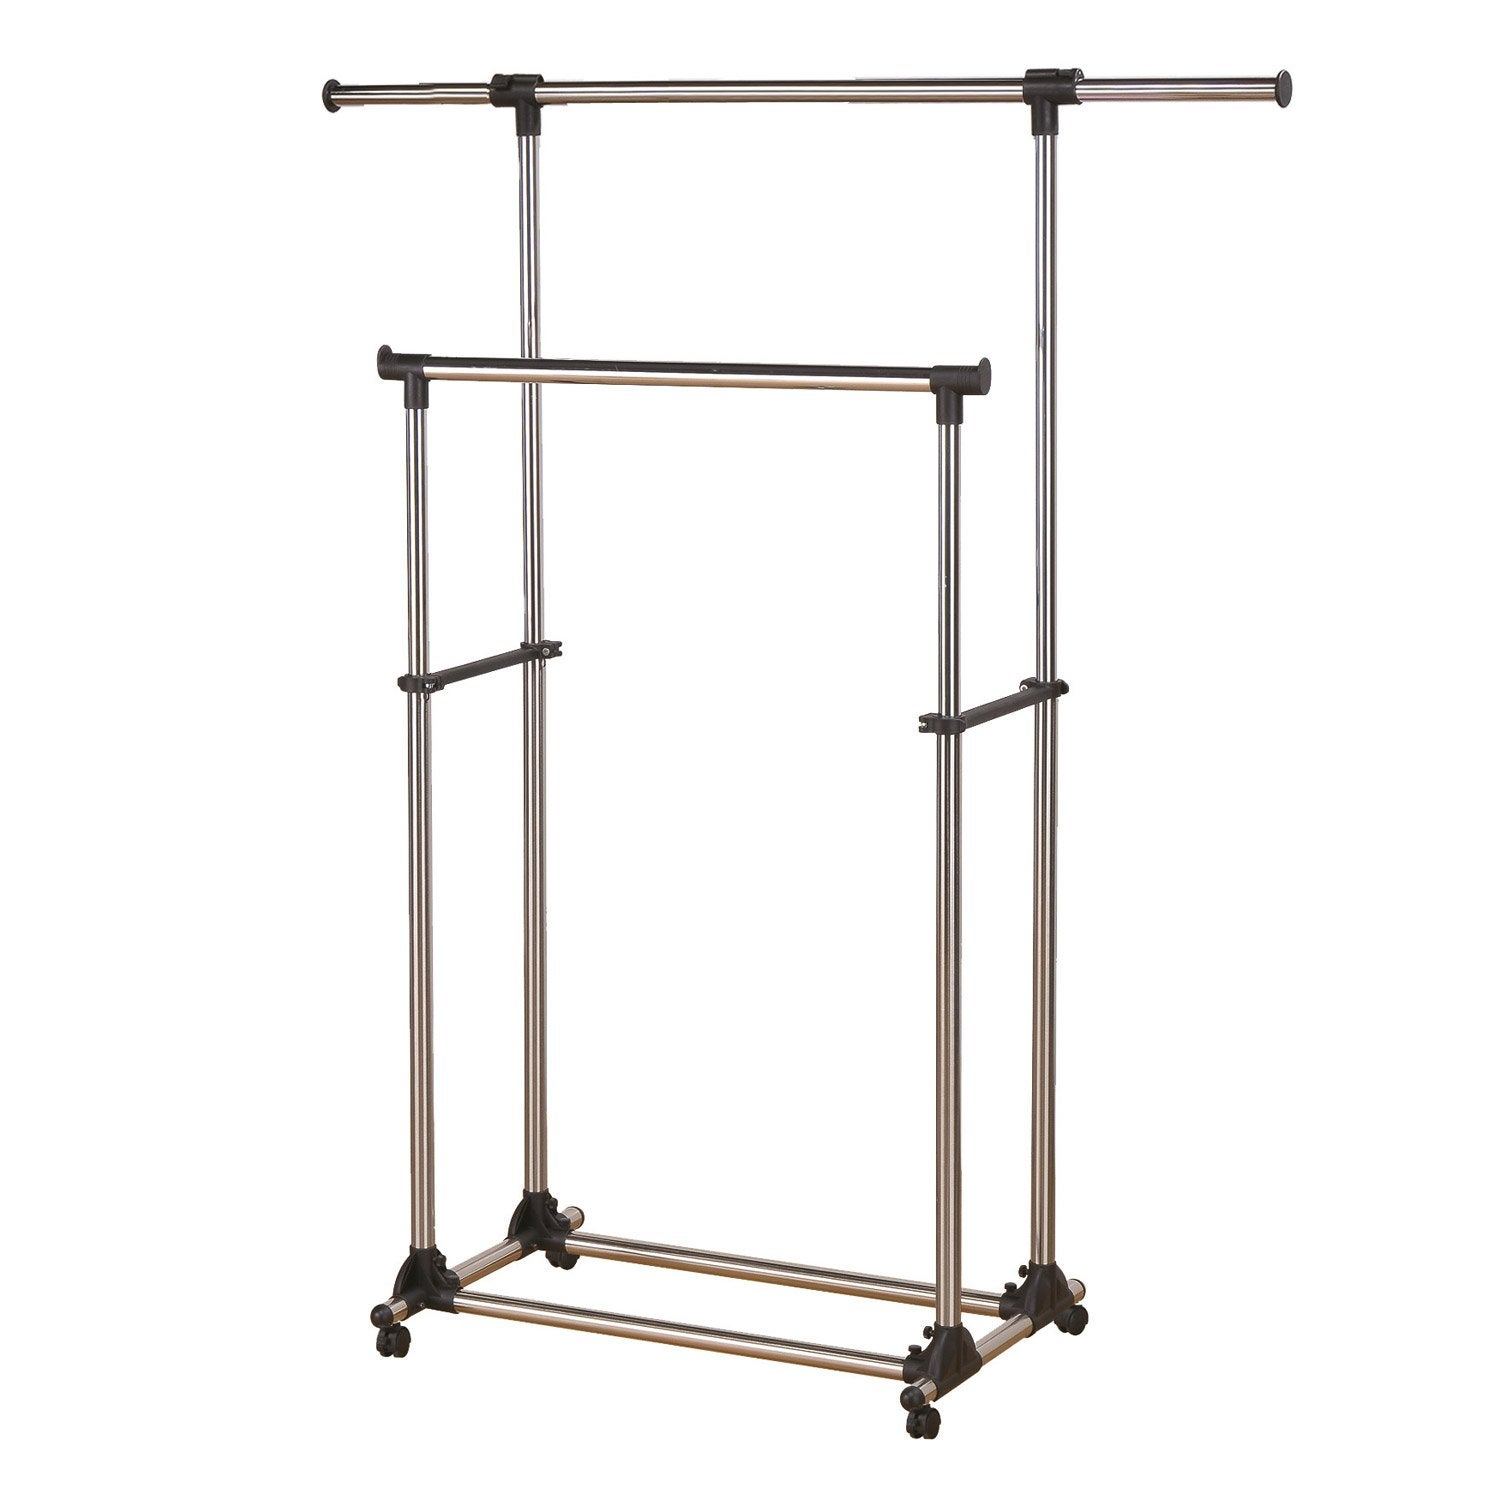 Portant extensible double barre gris acier spaceo x x cm leroy merlin - Portant leroy merlin ...